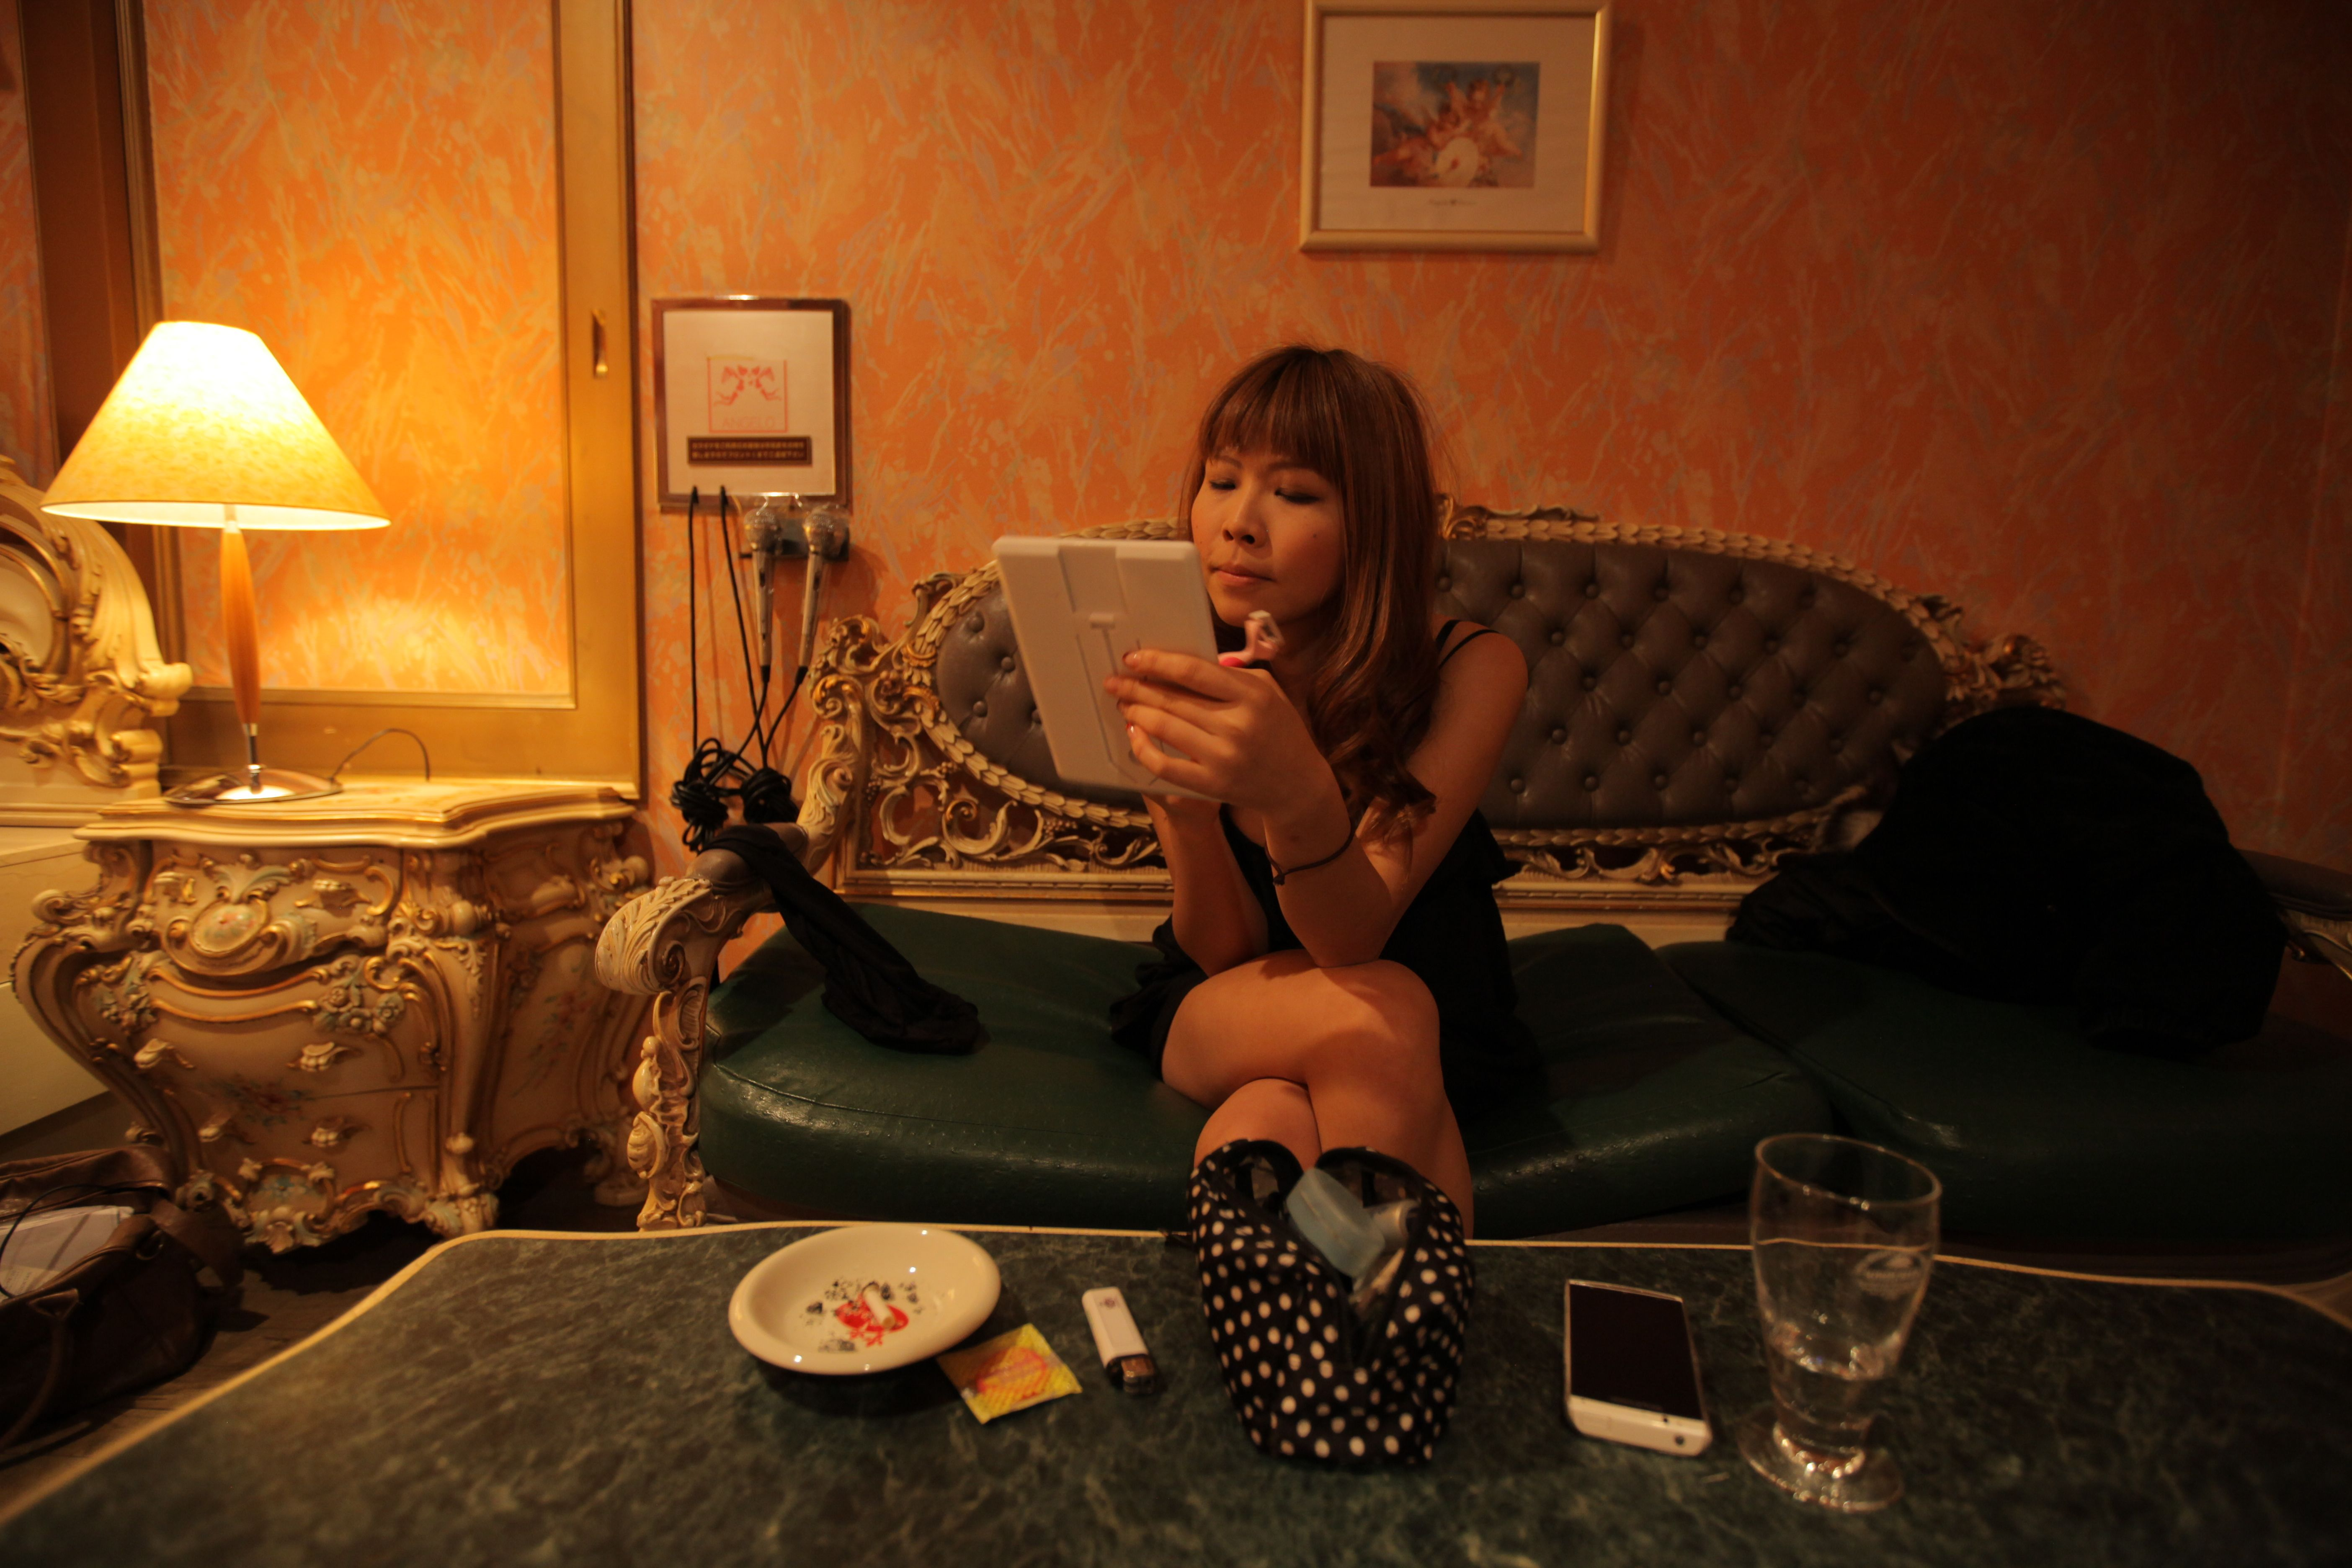 Every Day An Estimated 2 4 Million People Visit A Love Hotel The Business Is One Of Most Lucrative Industries In